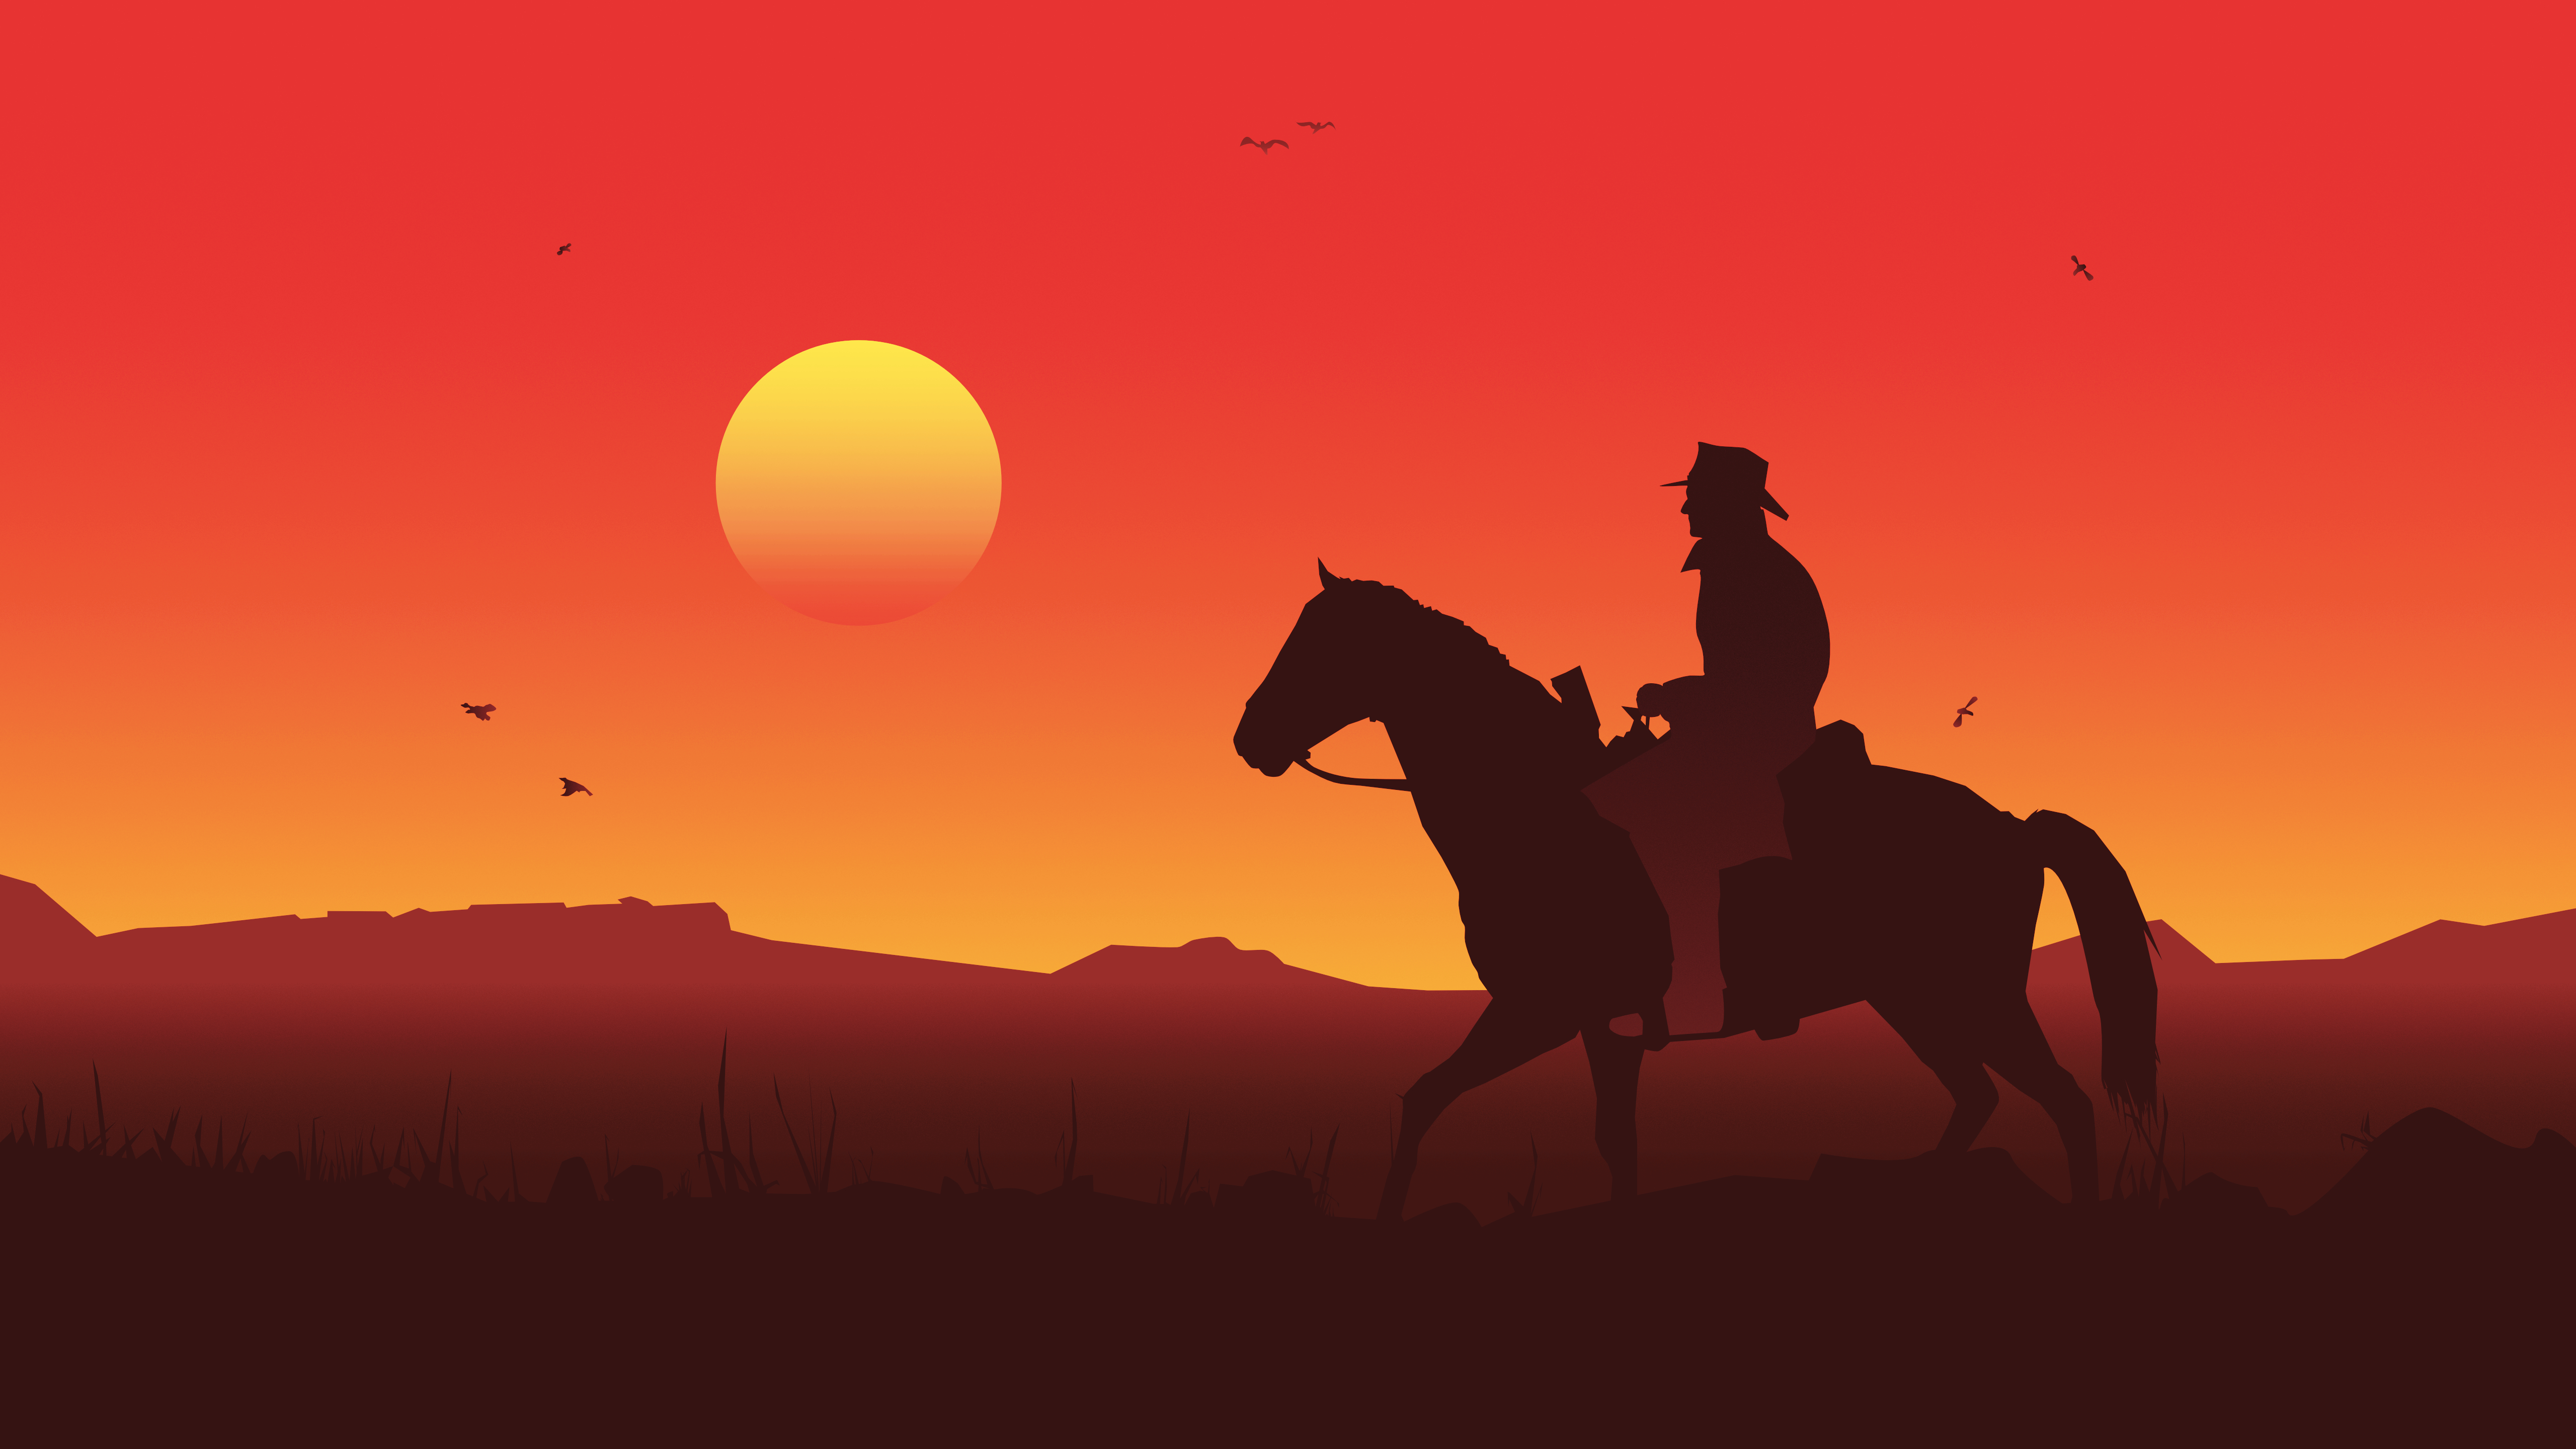 Red Dead Redemption 2 Wallpaper Hd Games 4k Wallpapers Images